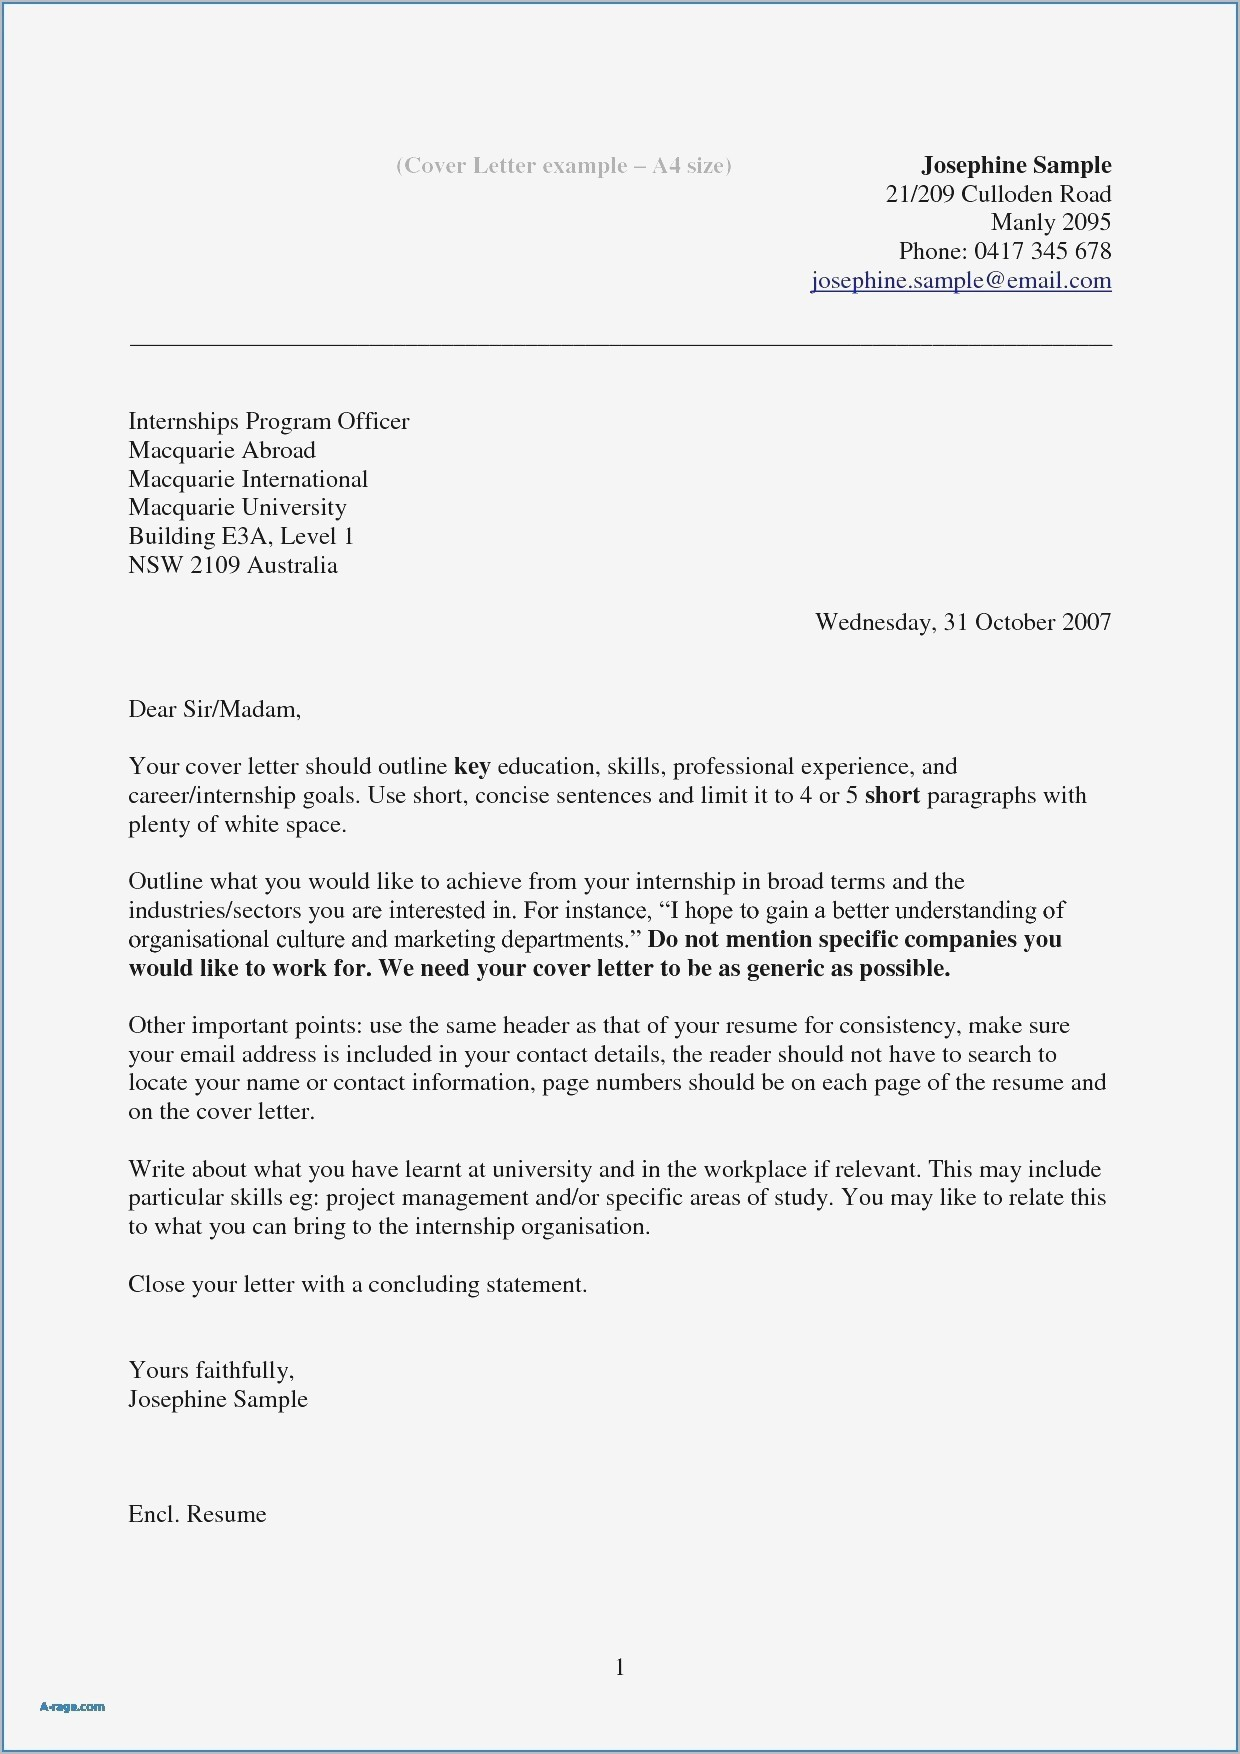 Email Cover Letter Template Free - Cover Letter for Pany Not Hiring